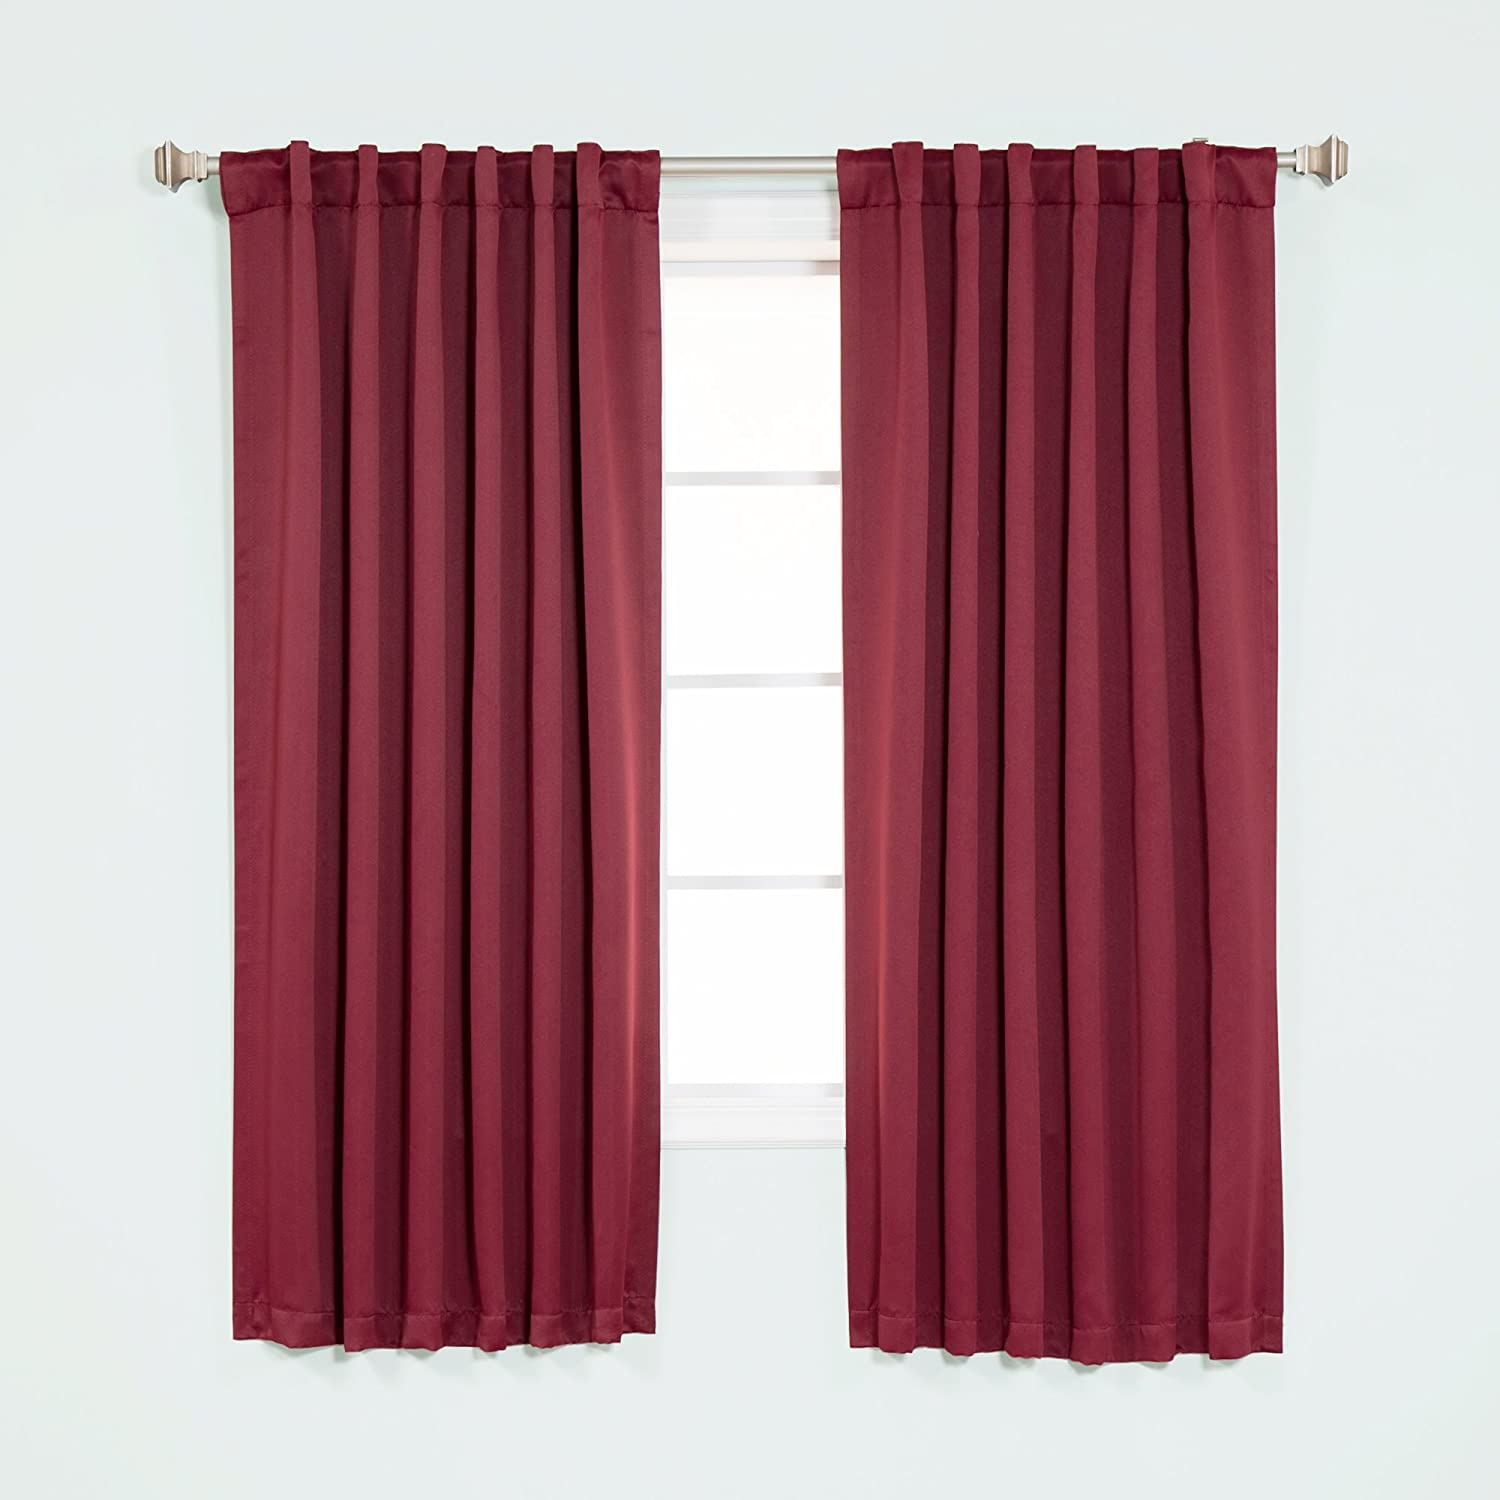 Best Home Fashion Premium Thermal Insulated Blackout Curtains - Back Tab/Rod Pocket - Beige - 40